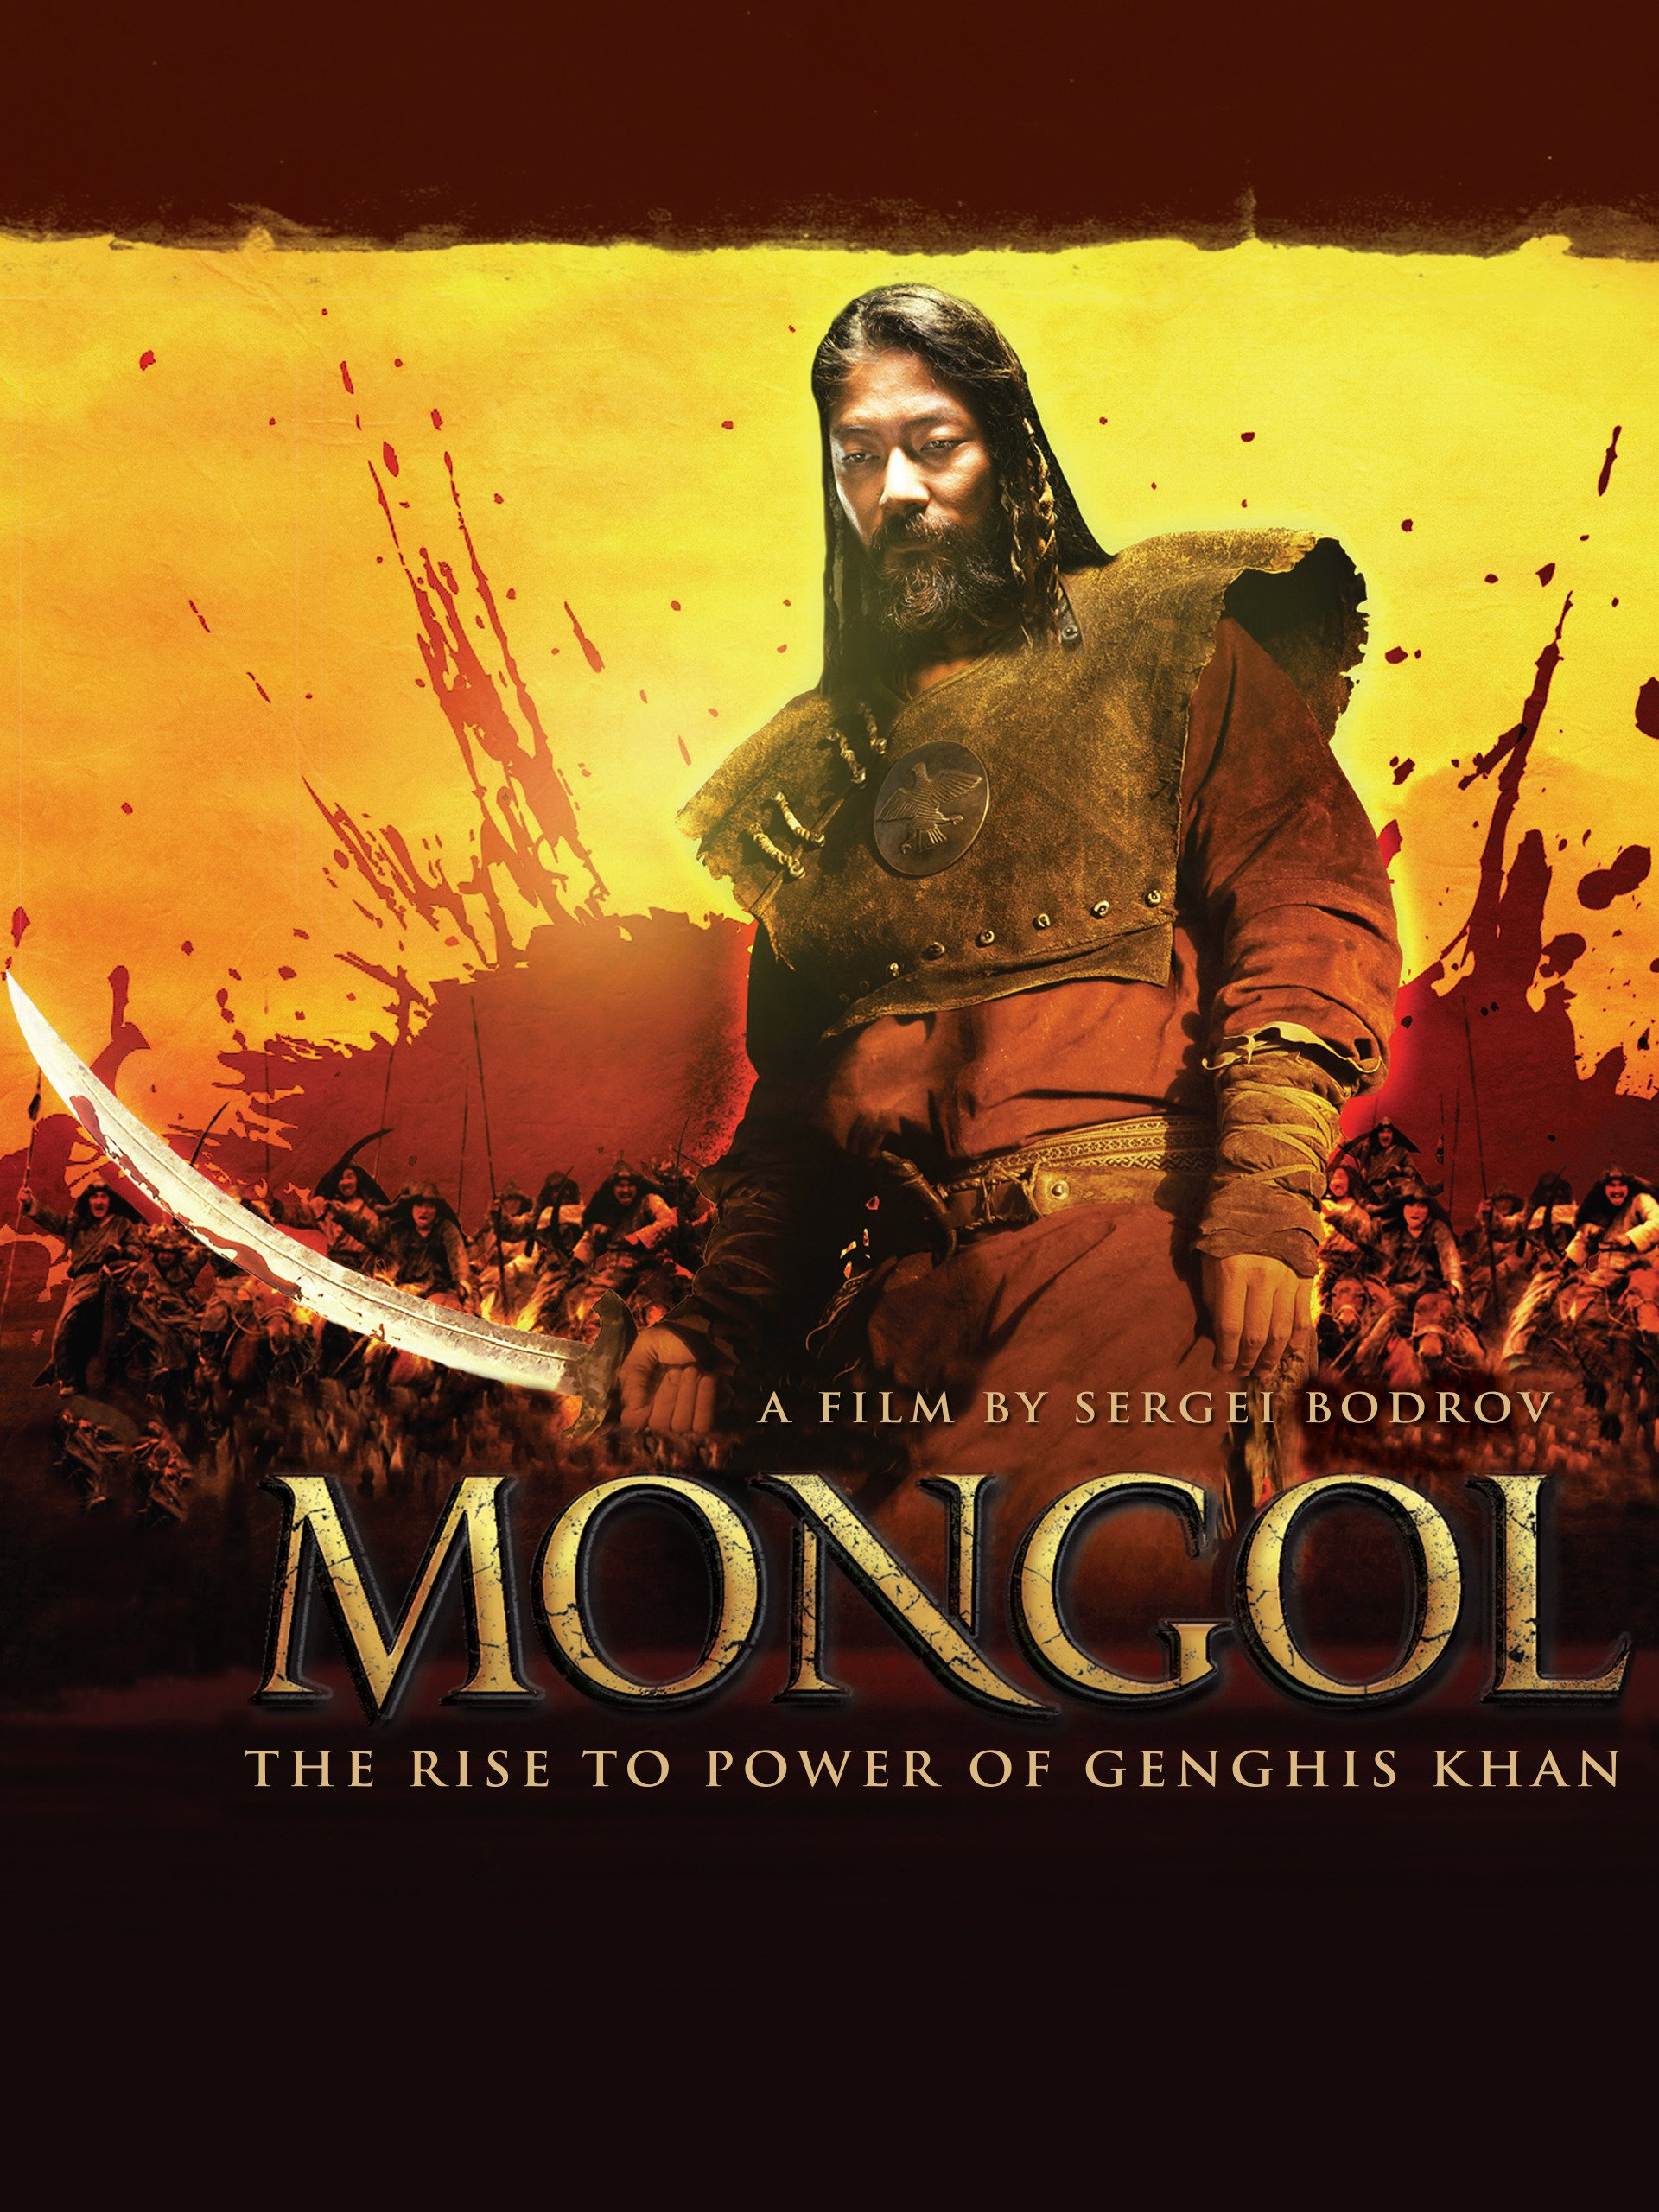 Watch Mongol The Rise Of Genghis Khan Prime Video